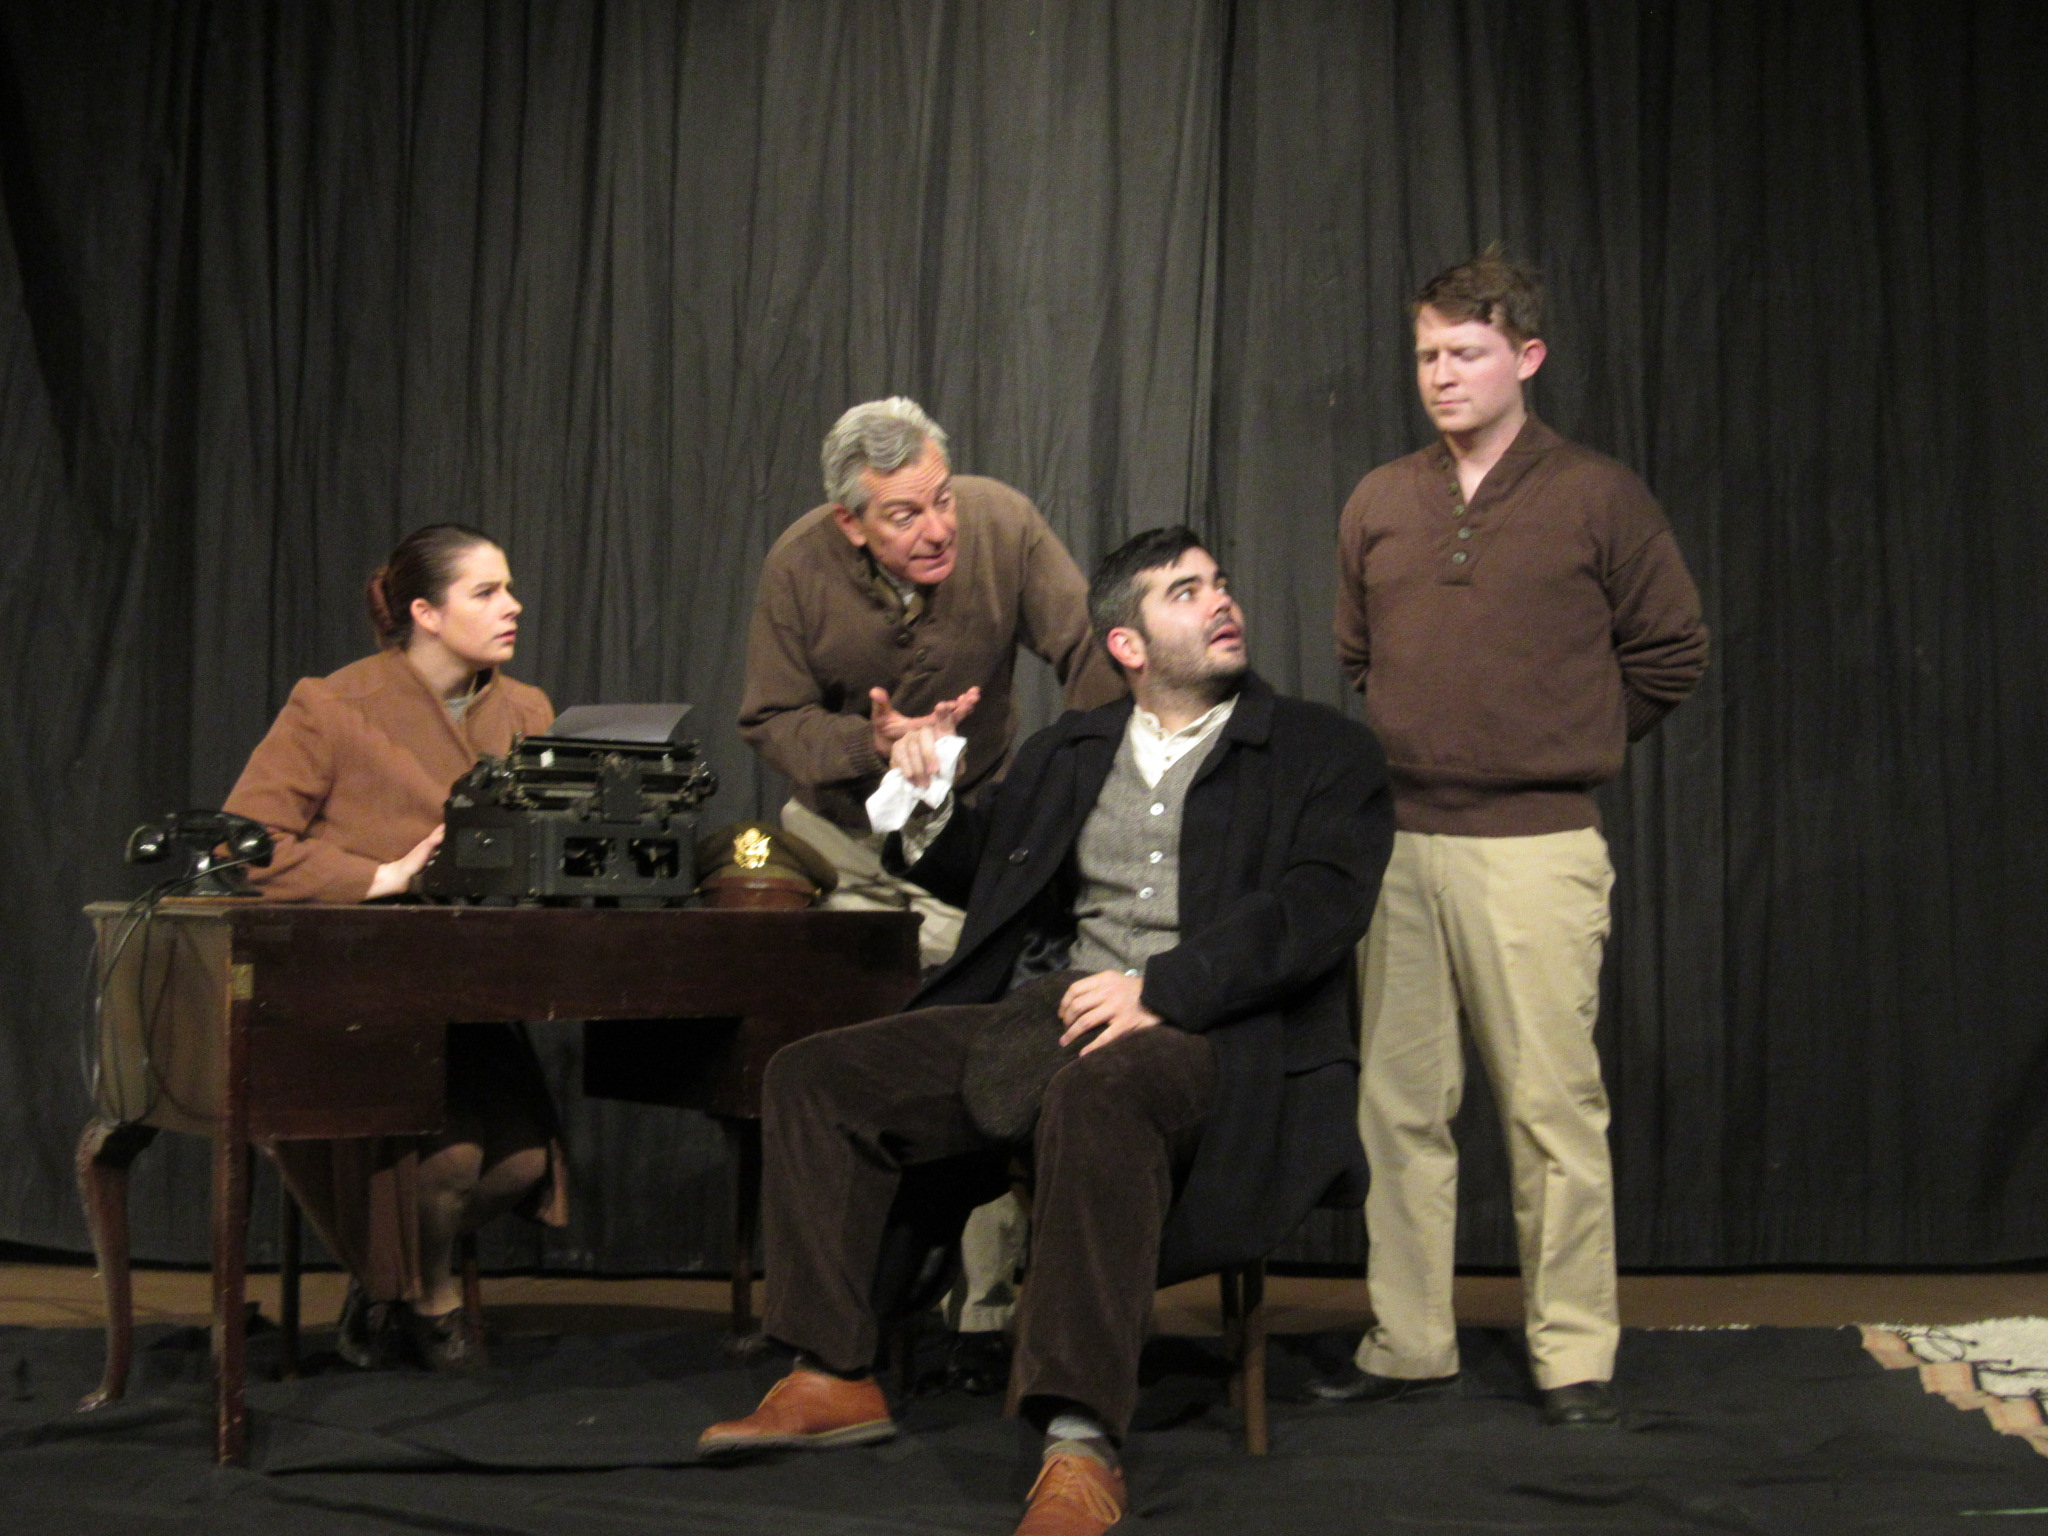 BWW Review: TAKING SIDES at Granite Theatre